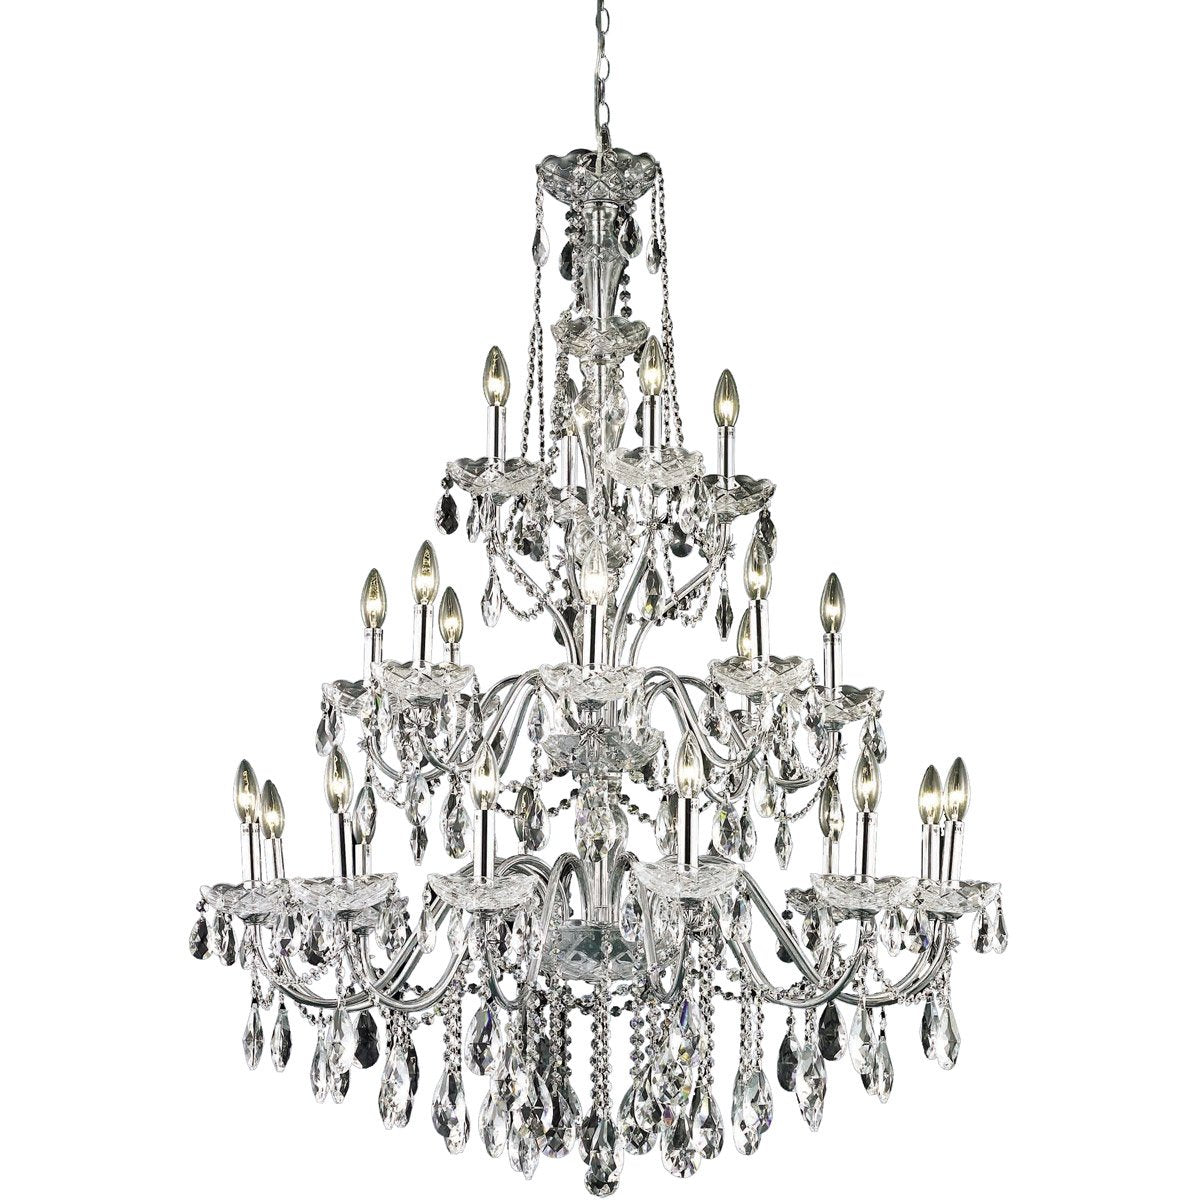 St. Francis 36 Crystal Foyer Pendant Chandelier With 24 Lights - Chrome Finish And Spectra Swarovski Crystal Chandelier